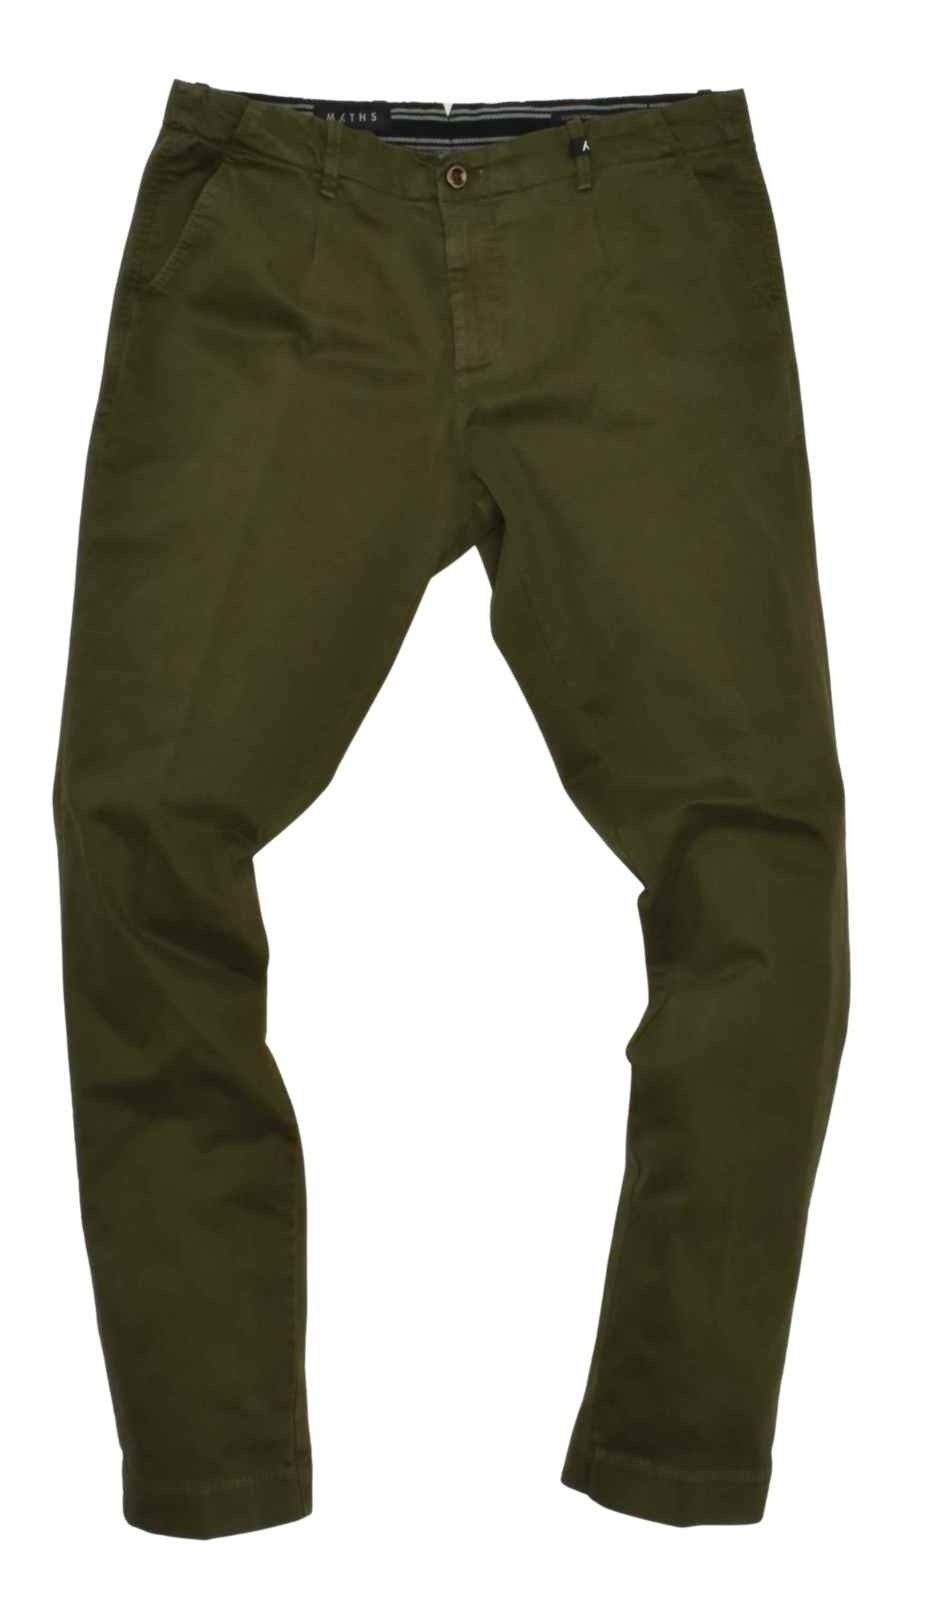 MYTHS - Herren Hose - Pantalone Lungo - Forest Green